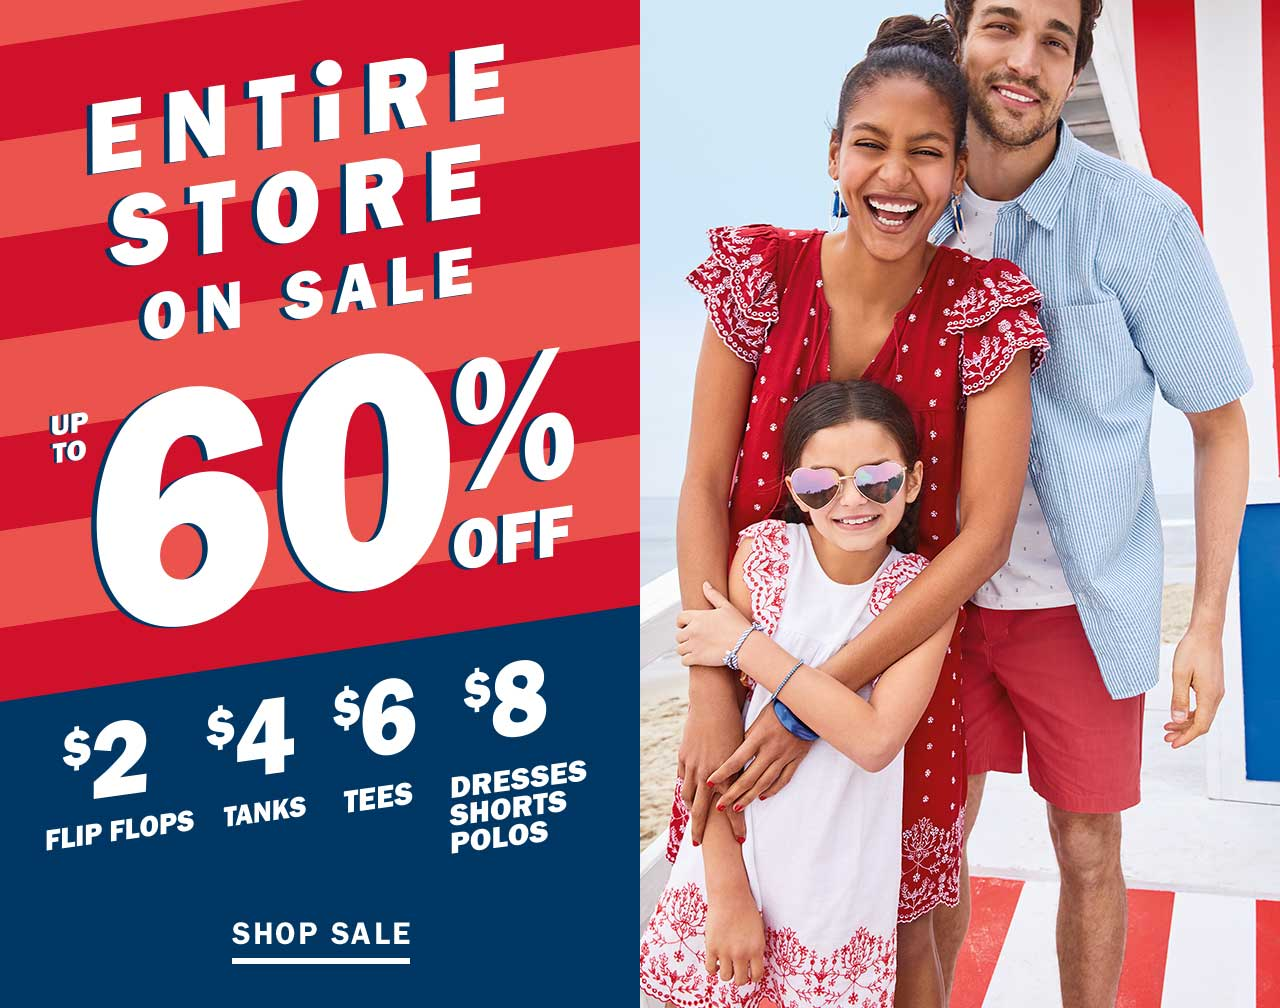 Old Navy: Up to 60% Off Sale - FTM